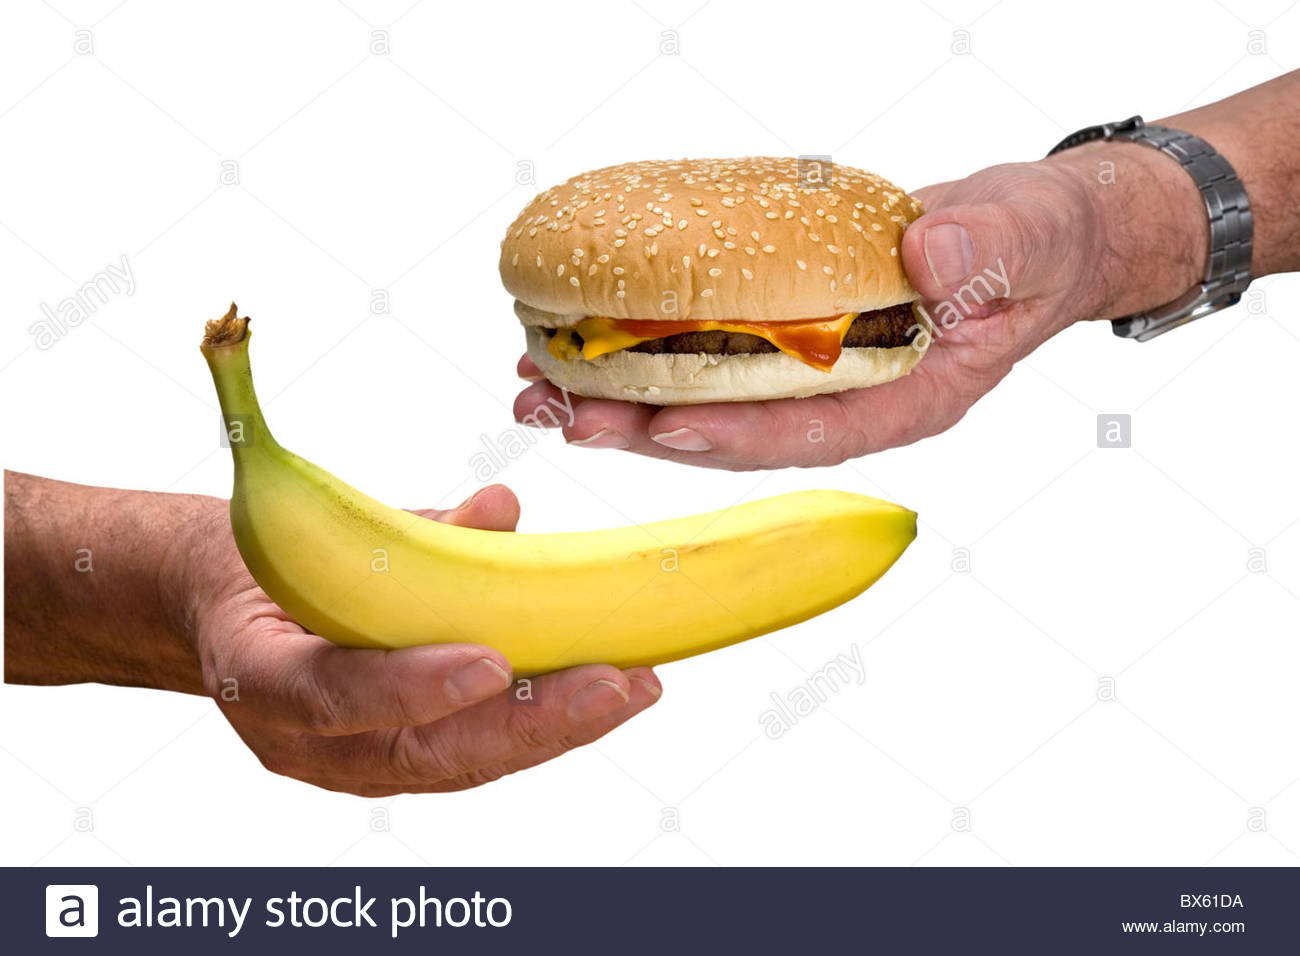 The decision is to choose between a hamburger or the healthy option of a banana. - Stock Image